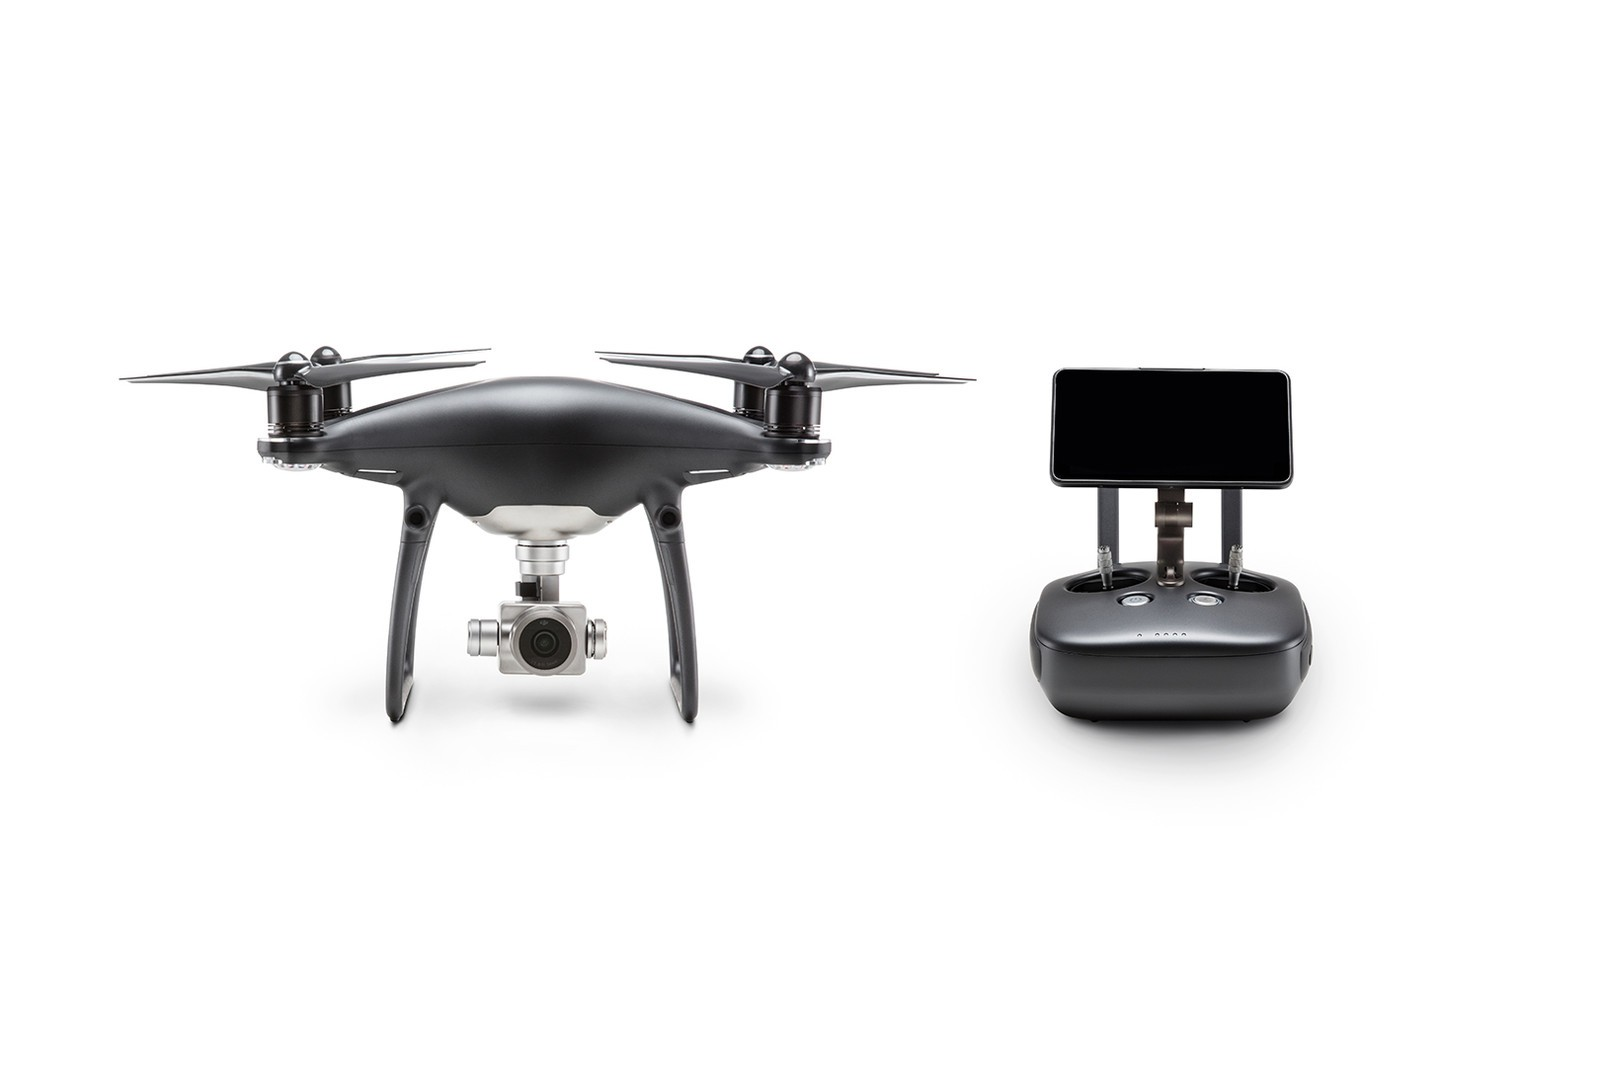 The matte-gray Phantom 4 Pro Obsidian drone and its matching controller sitting stationary against a white background